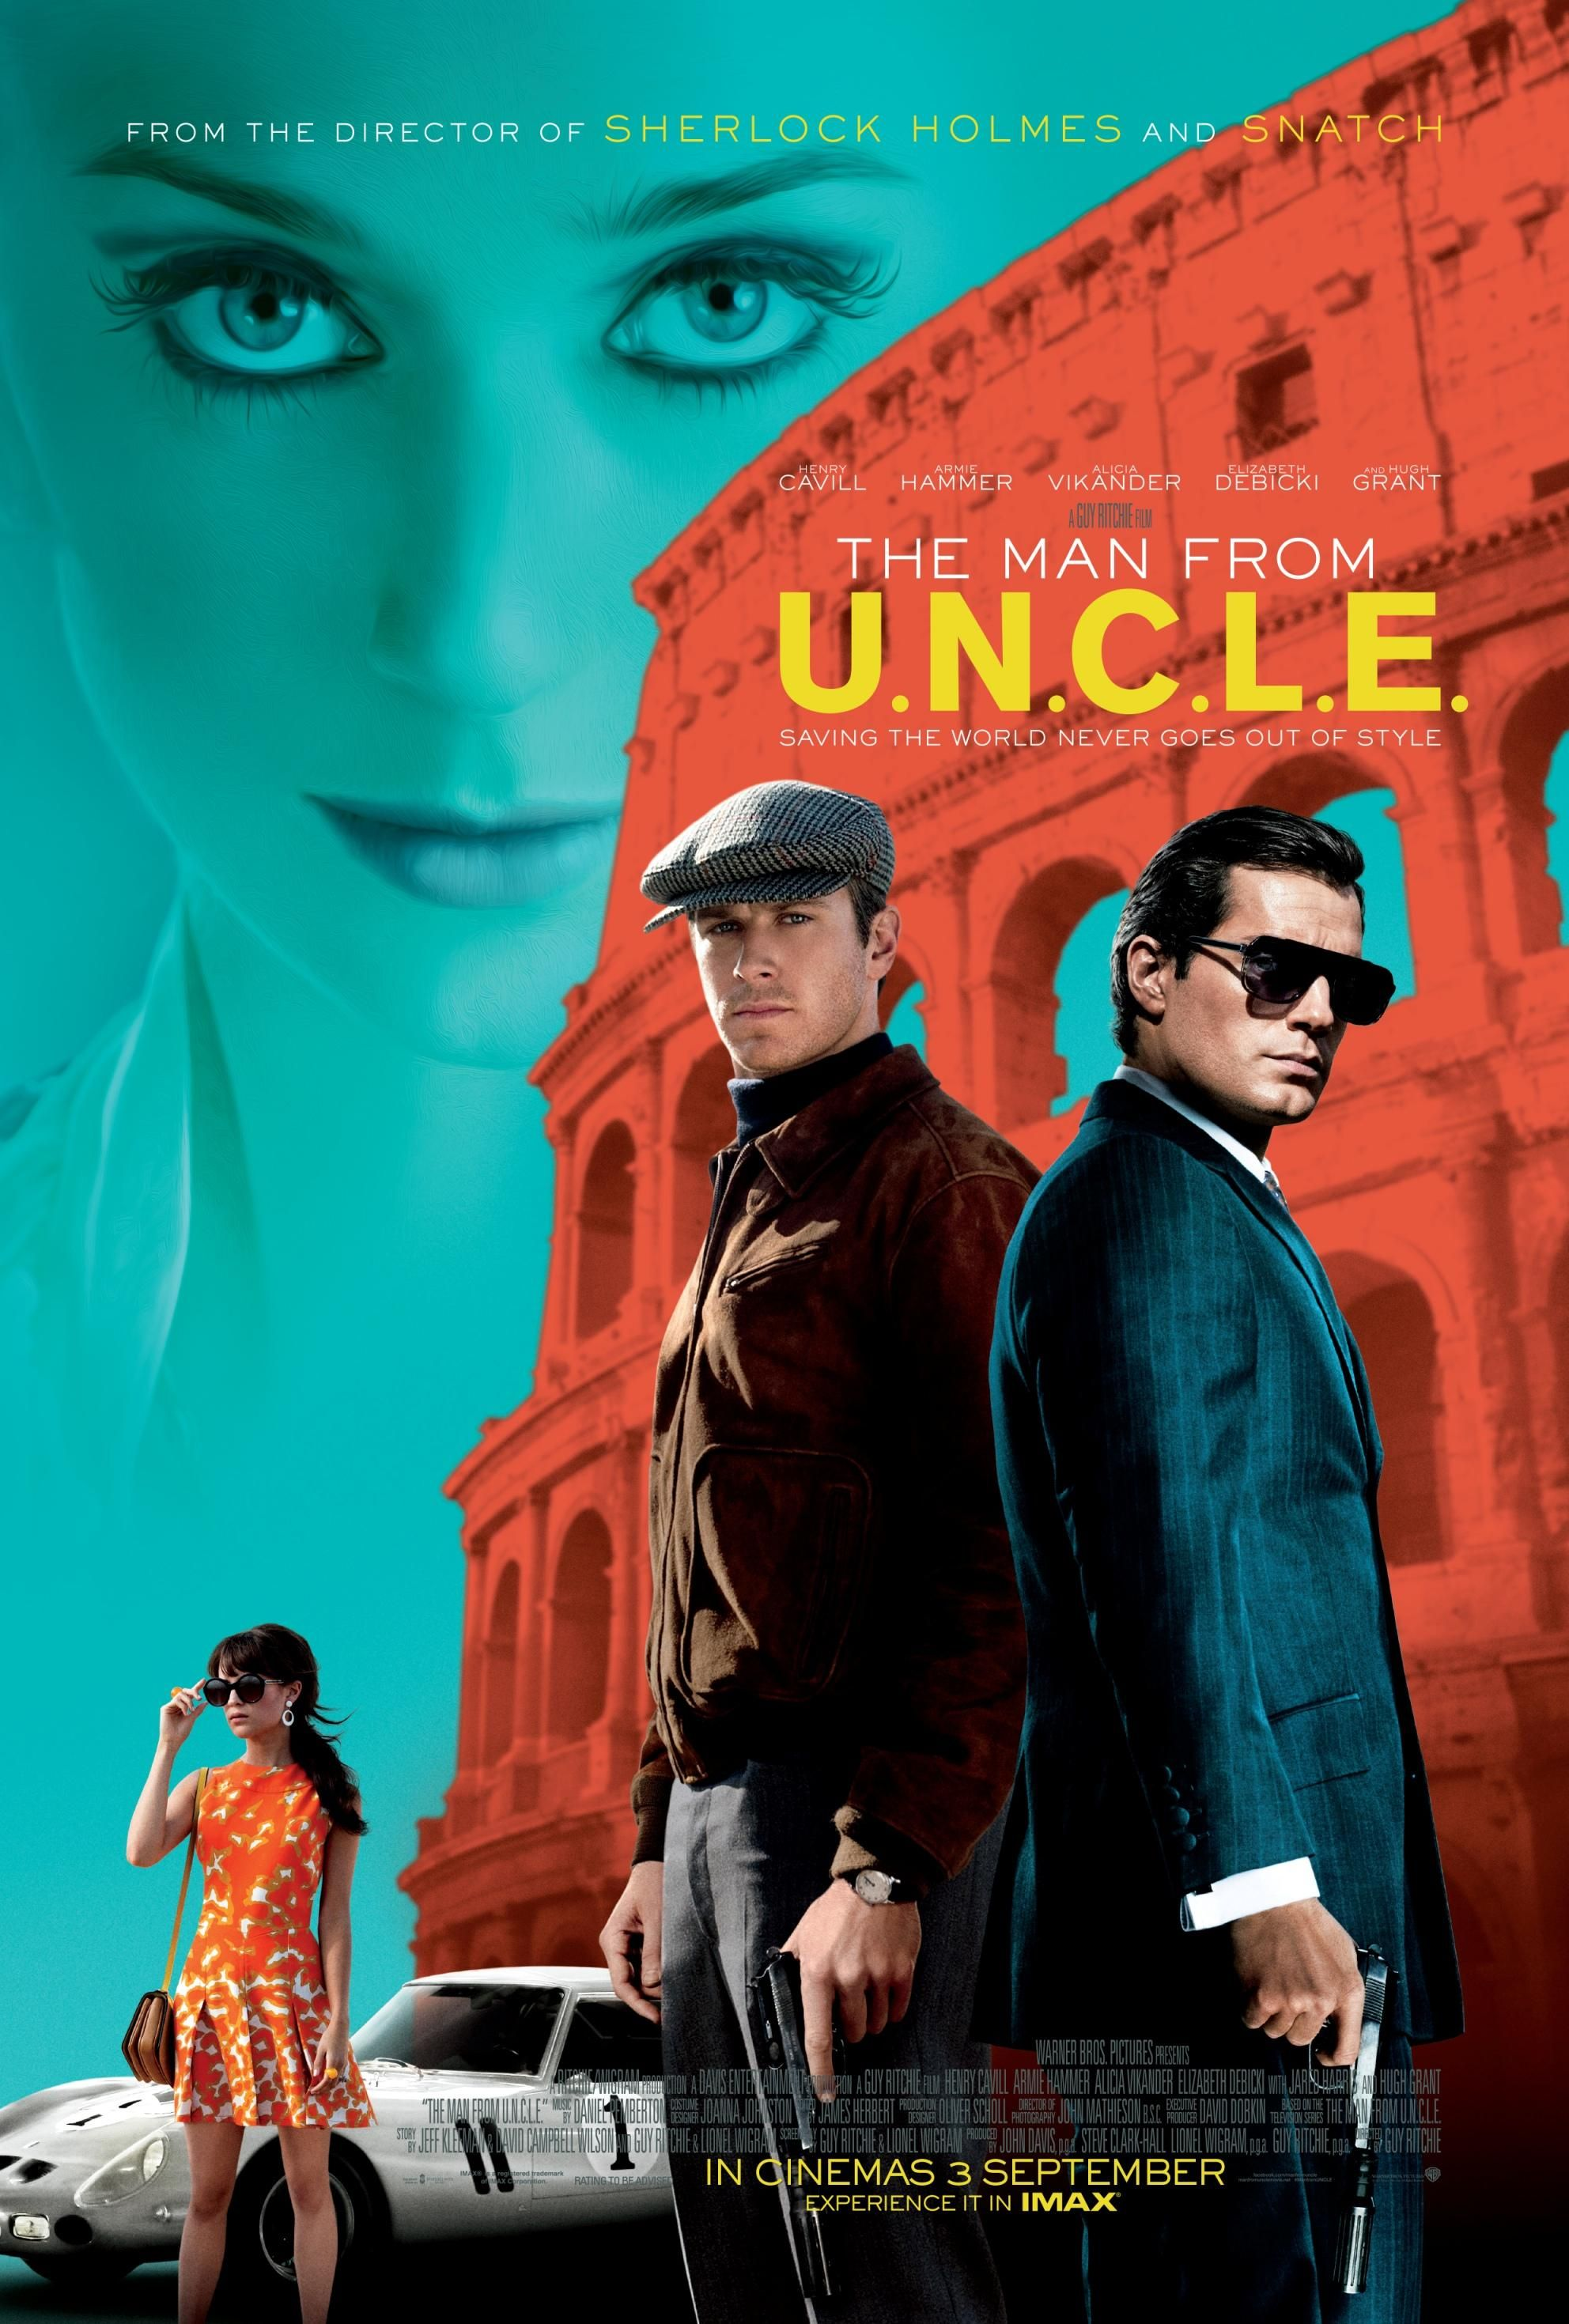 特務型戰|The Man from U.N.C.L.E.|116min / 2015 |GuyRitchie